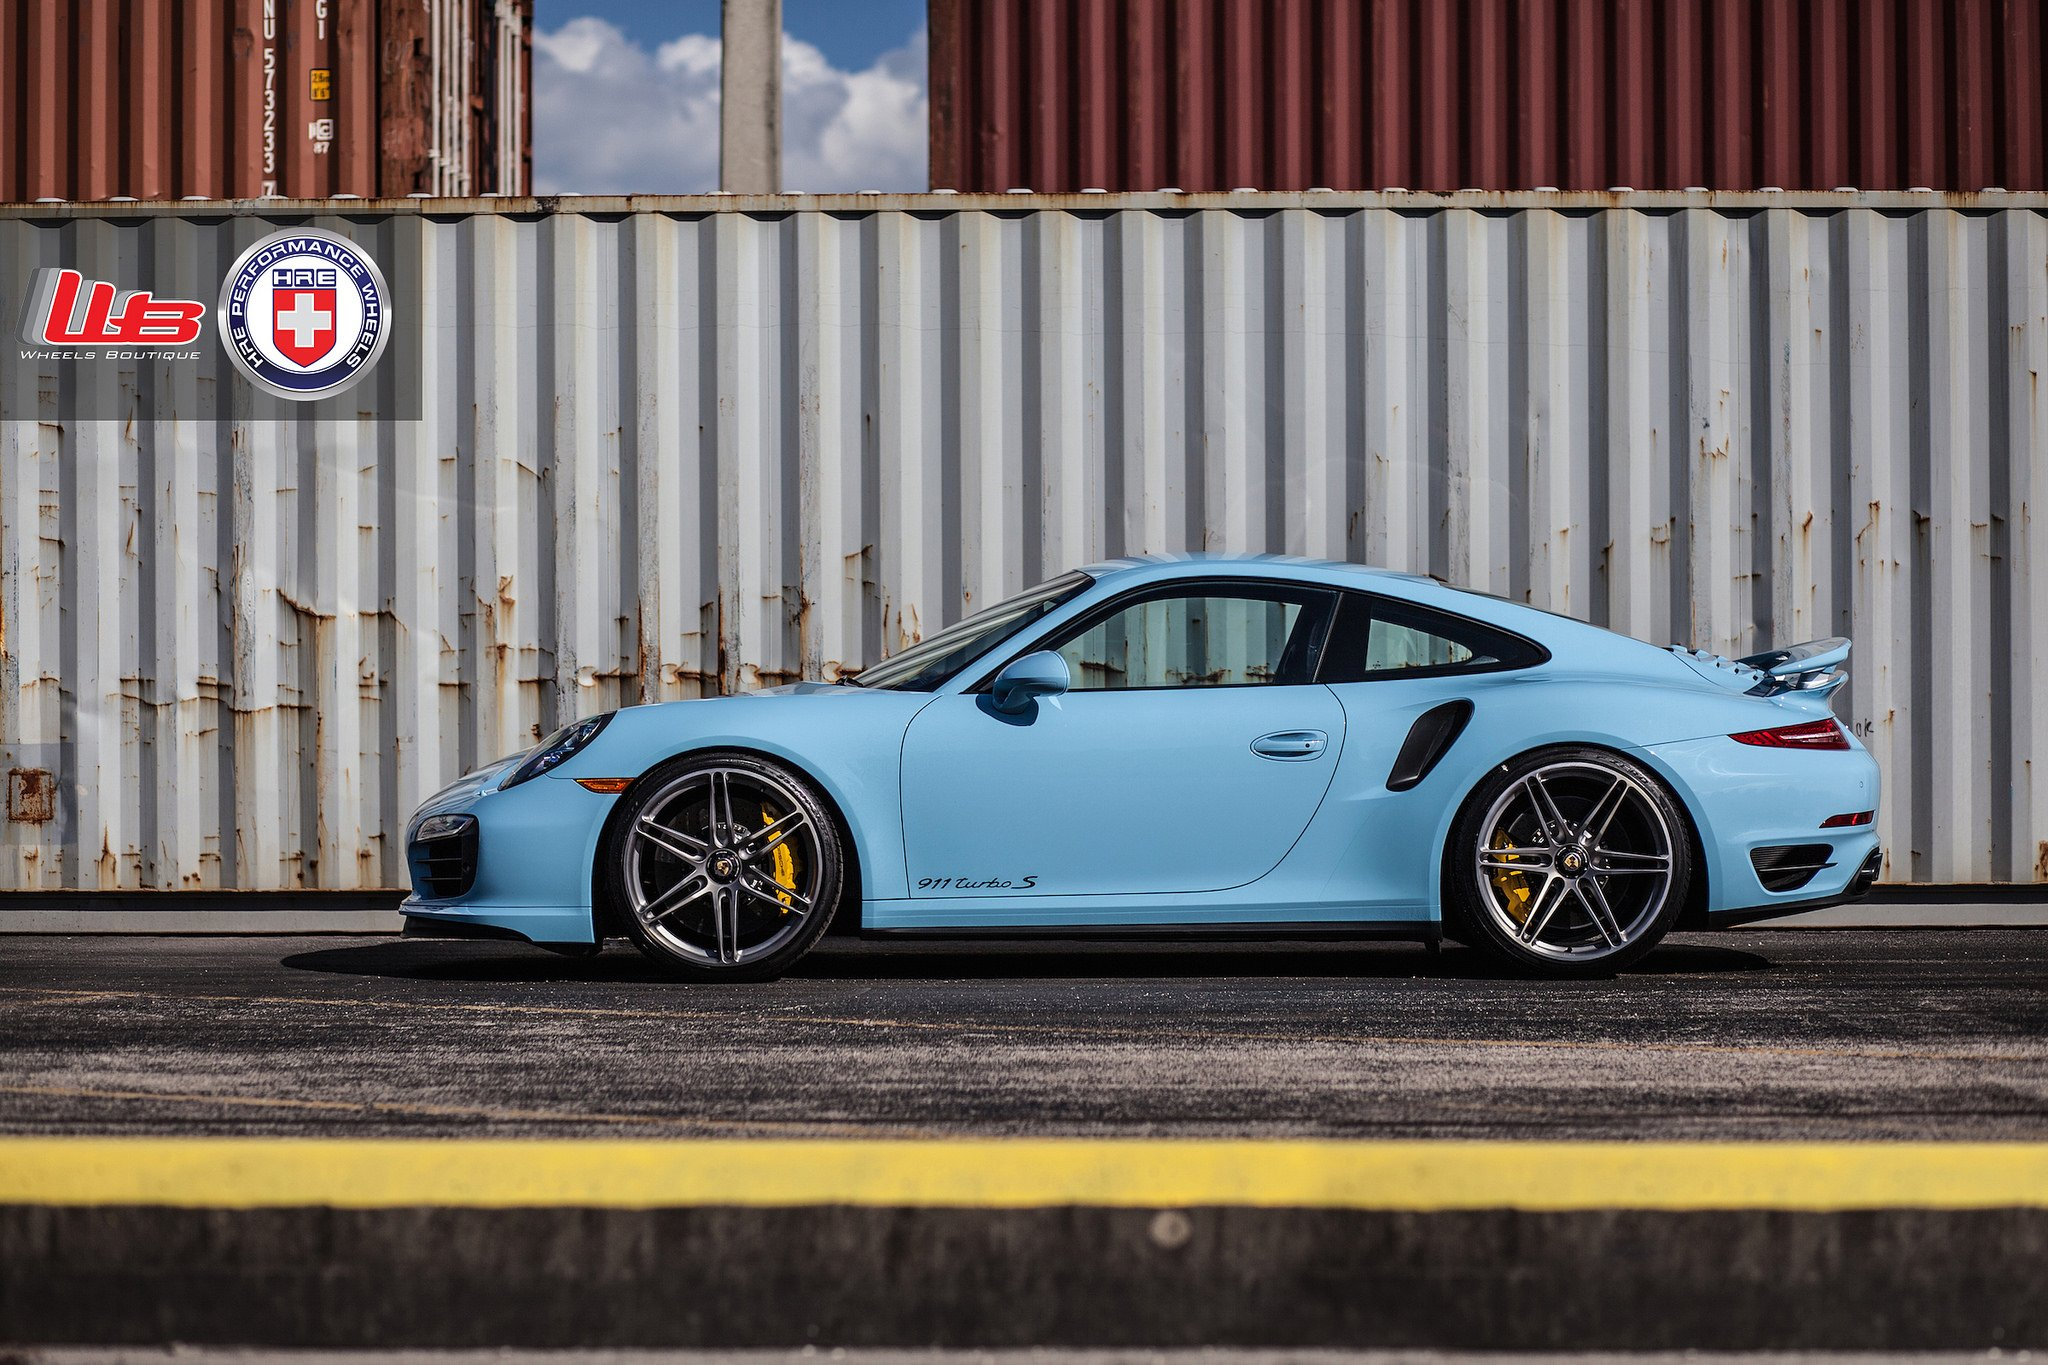 porsche 991 turbo s coupe hre wheels tuning cars wallpaper. Black Bedroom Furniture Sets. Home Design Ideas